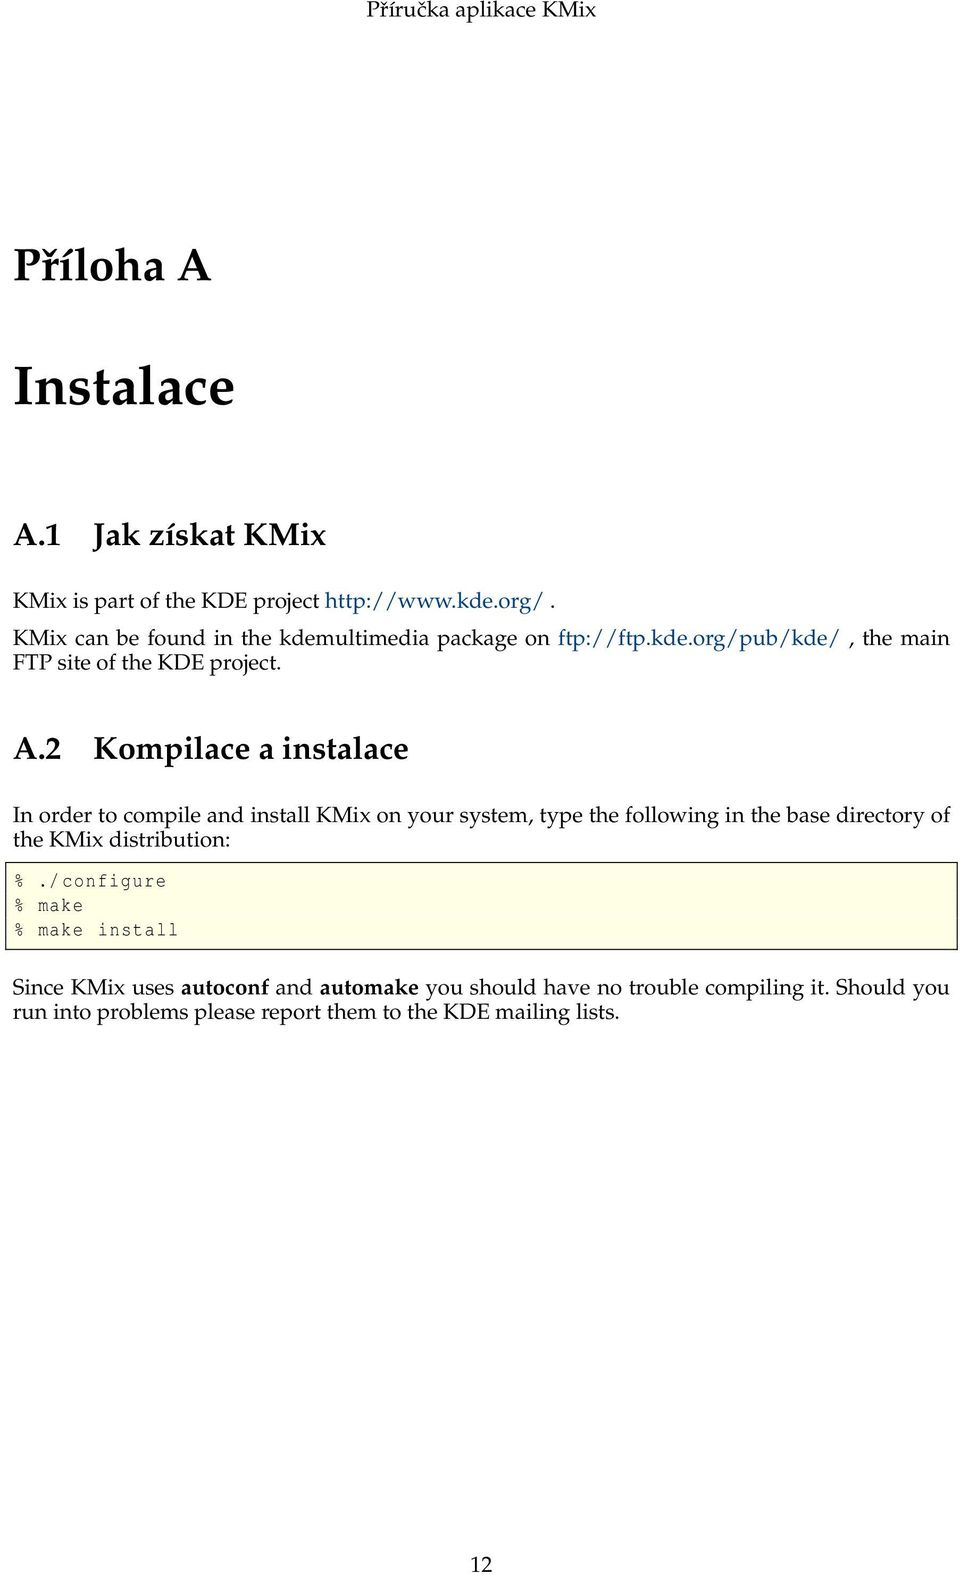 2 Kompilace a instalace In order to compile and install KMix on your system, type the following in the base directory of the KMix